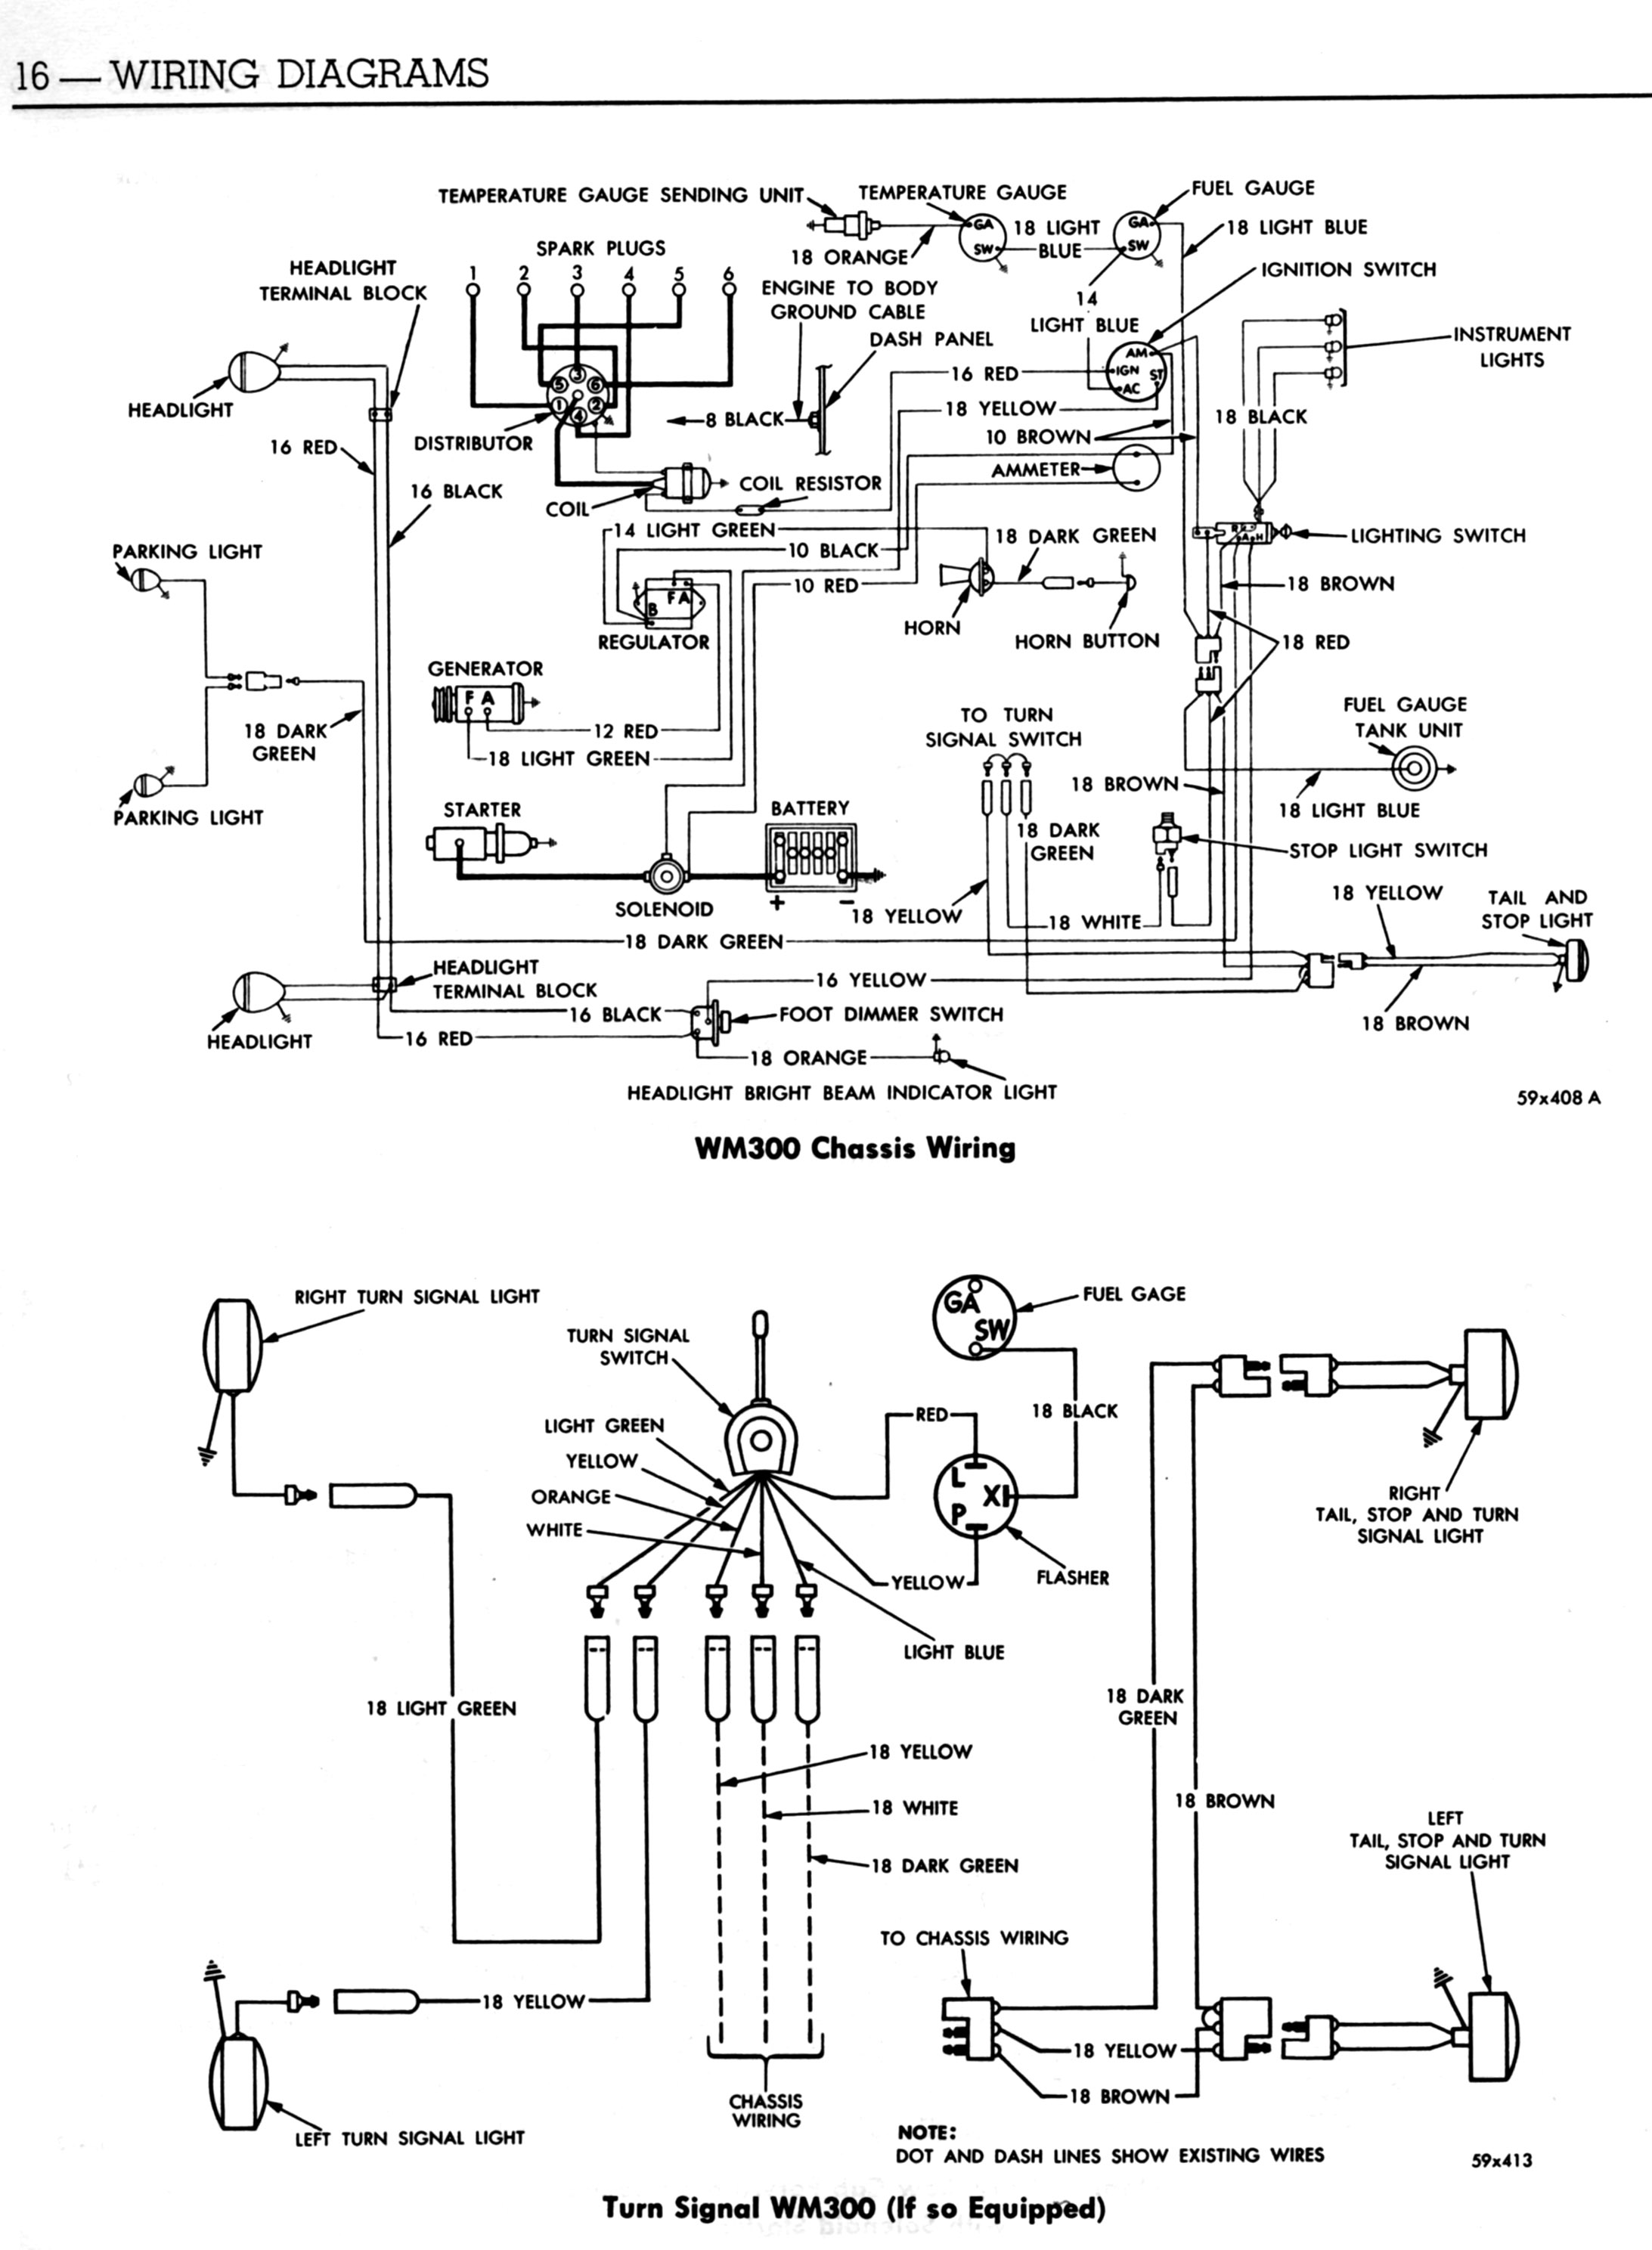 1960 Dodge Wiring Diagram 2003 Dodge Dakota Diagrams